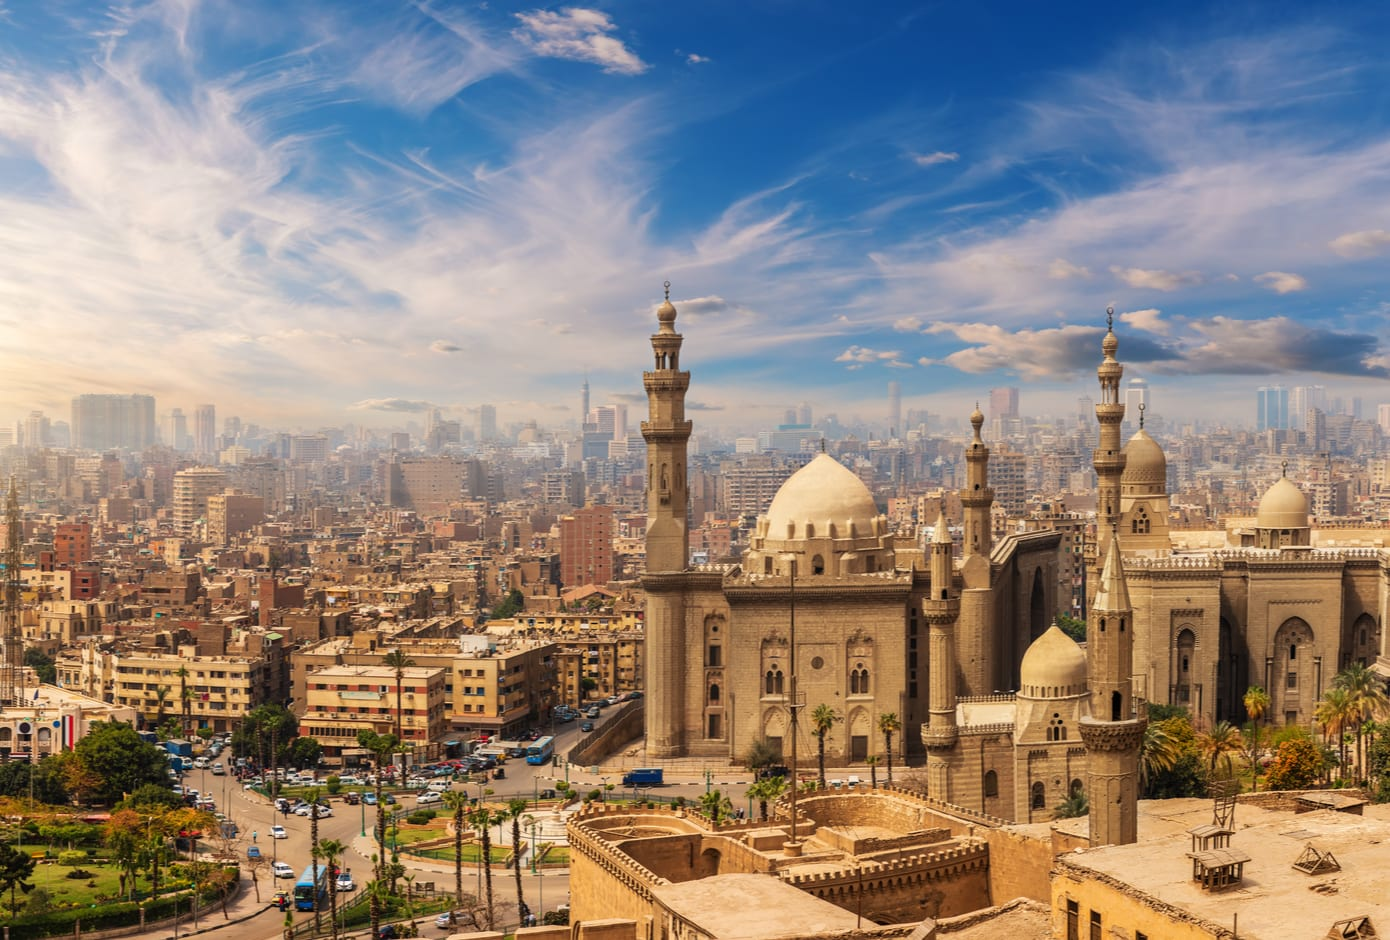 The Mosque-Madrasa of Sultan Hassan at sunset, Cairo Citadel, Egypt.